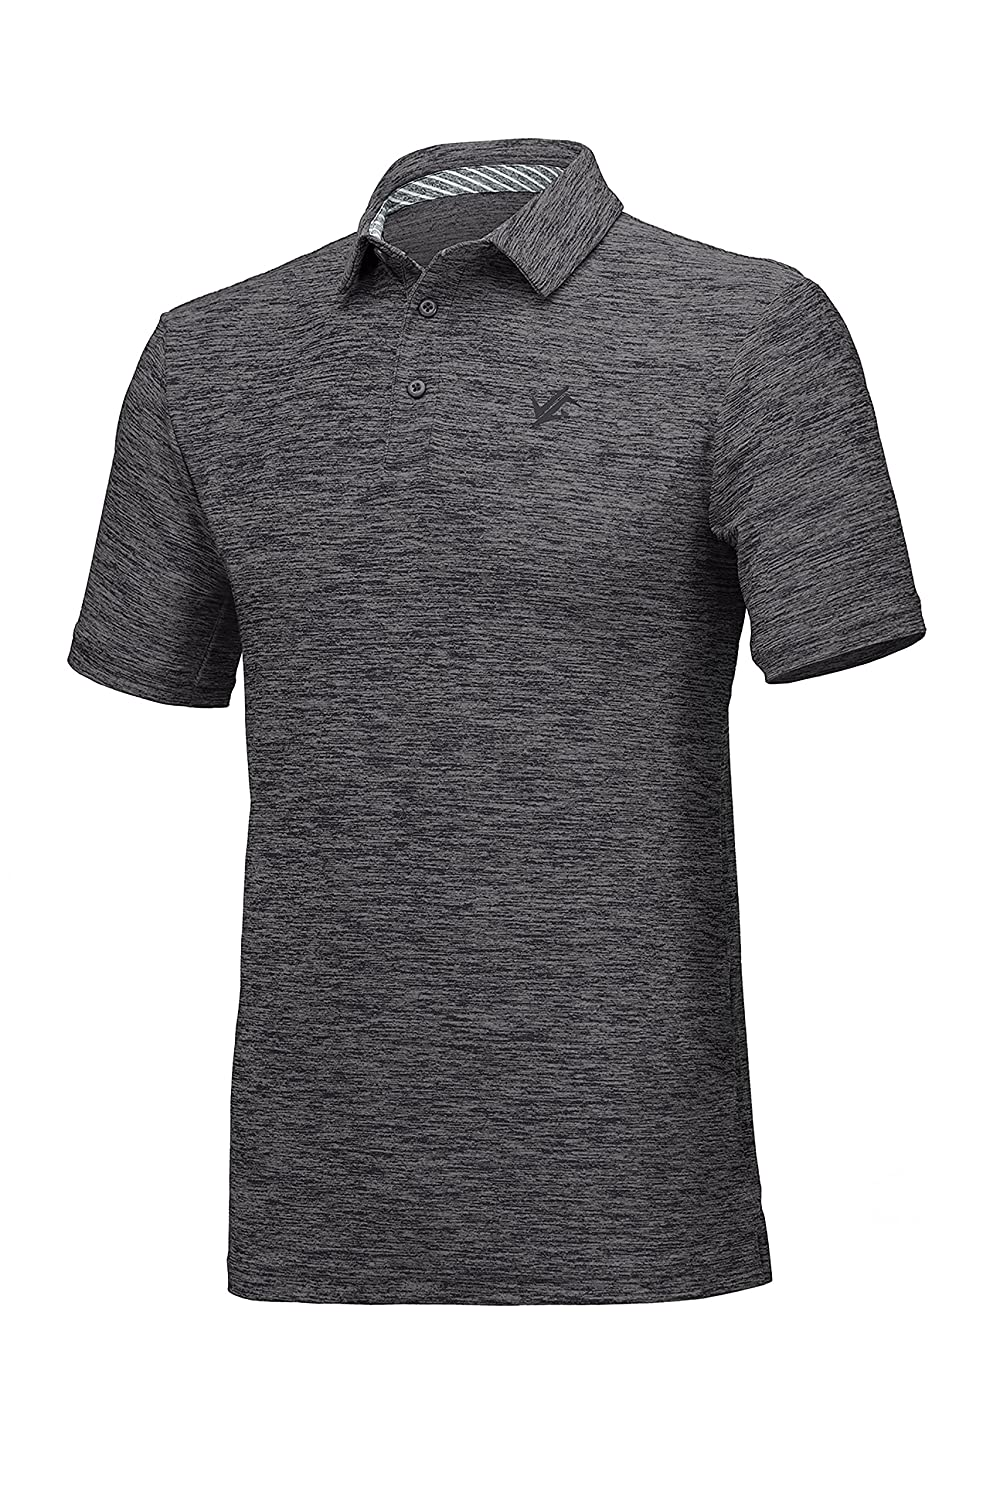 5e6c2c7c 4-WAY STRETCH FABRICATION - These golf polos have an athletic, loose  performance fit, which allows for great mobility in any direction.